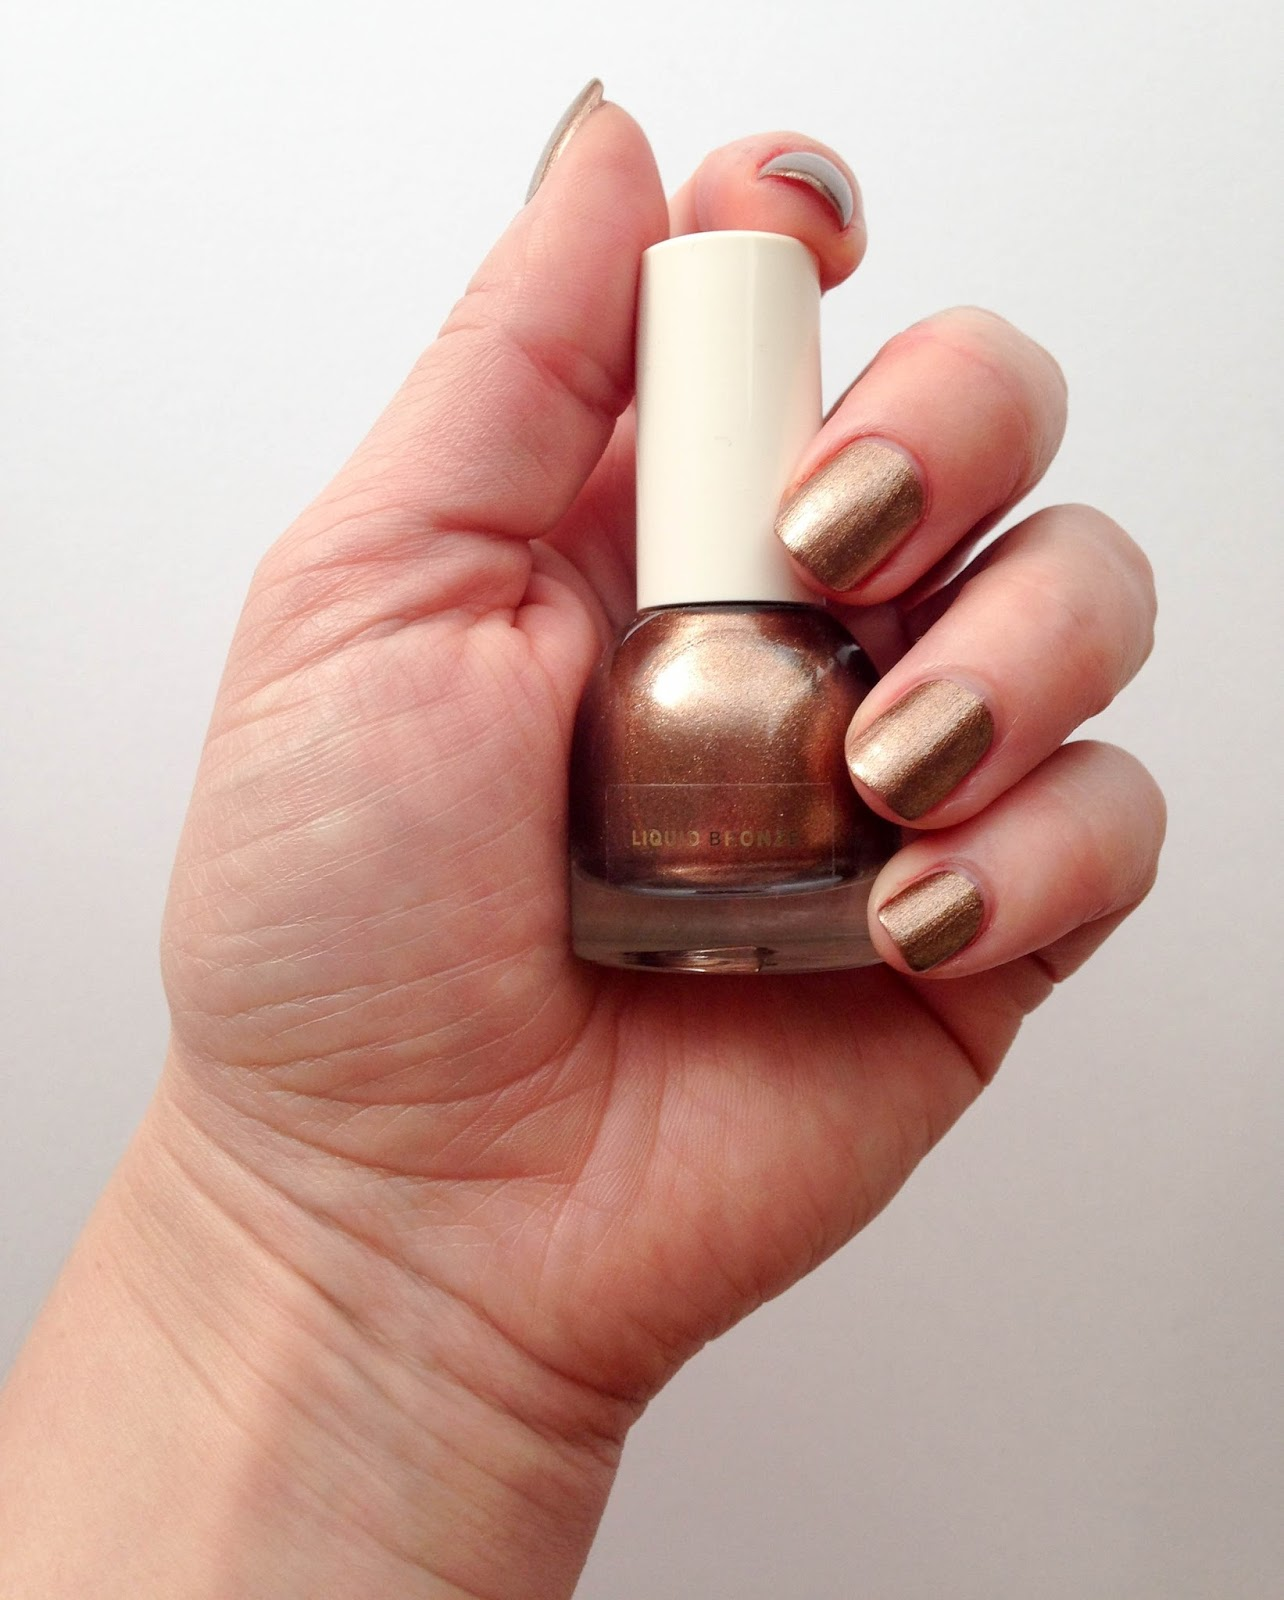 NOTD: H&M nailpolish in Liquid Bronze (501) | Wrinkles And Heels